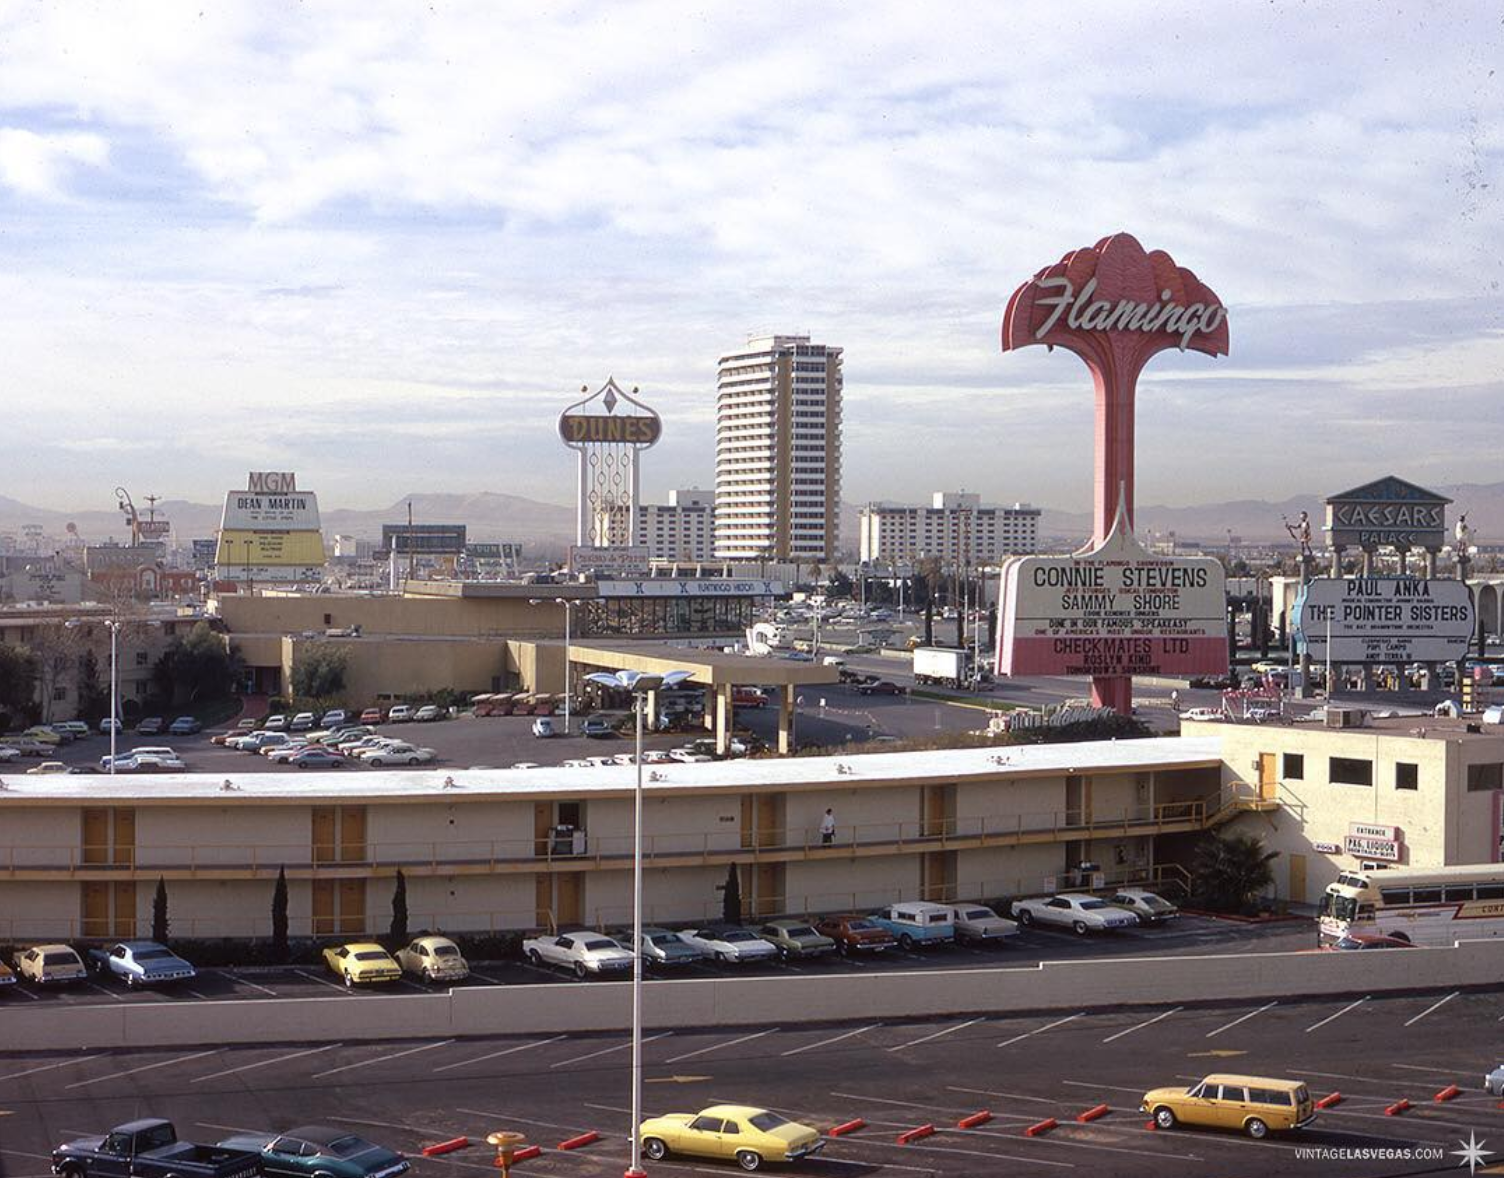 1974, morning view from Holiday Inn. This was taken from the first tower at what is now Harrahs, looking south, Flamingo Capri Motel in the foreground. © Vintage Las Vegas Instagram